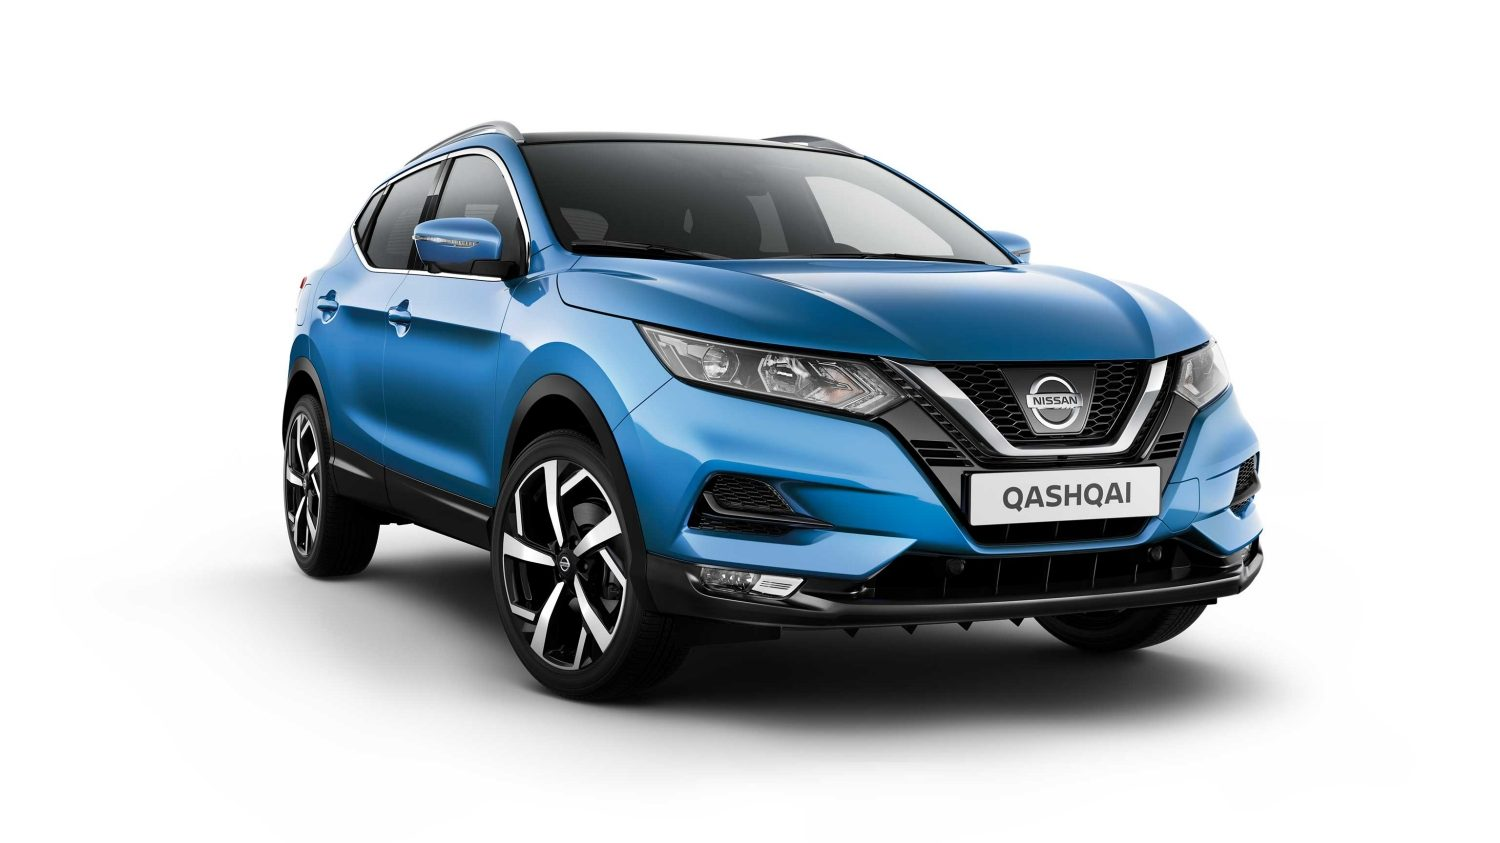 New Qashqai Nissan South Africa